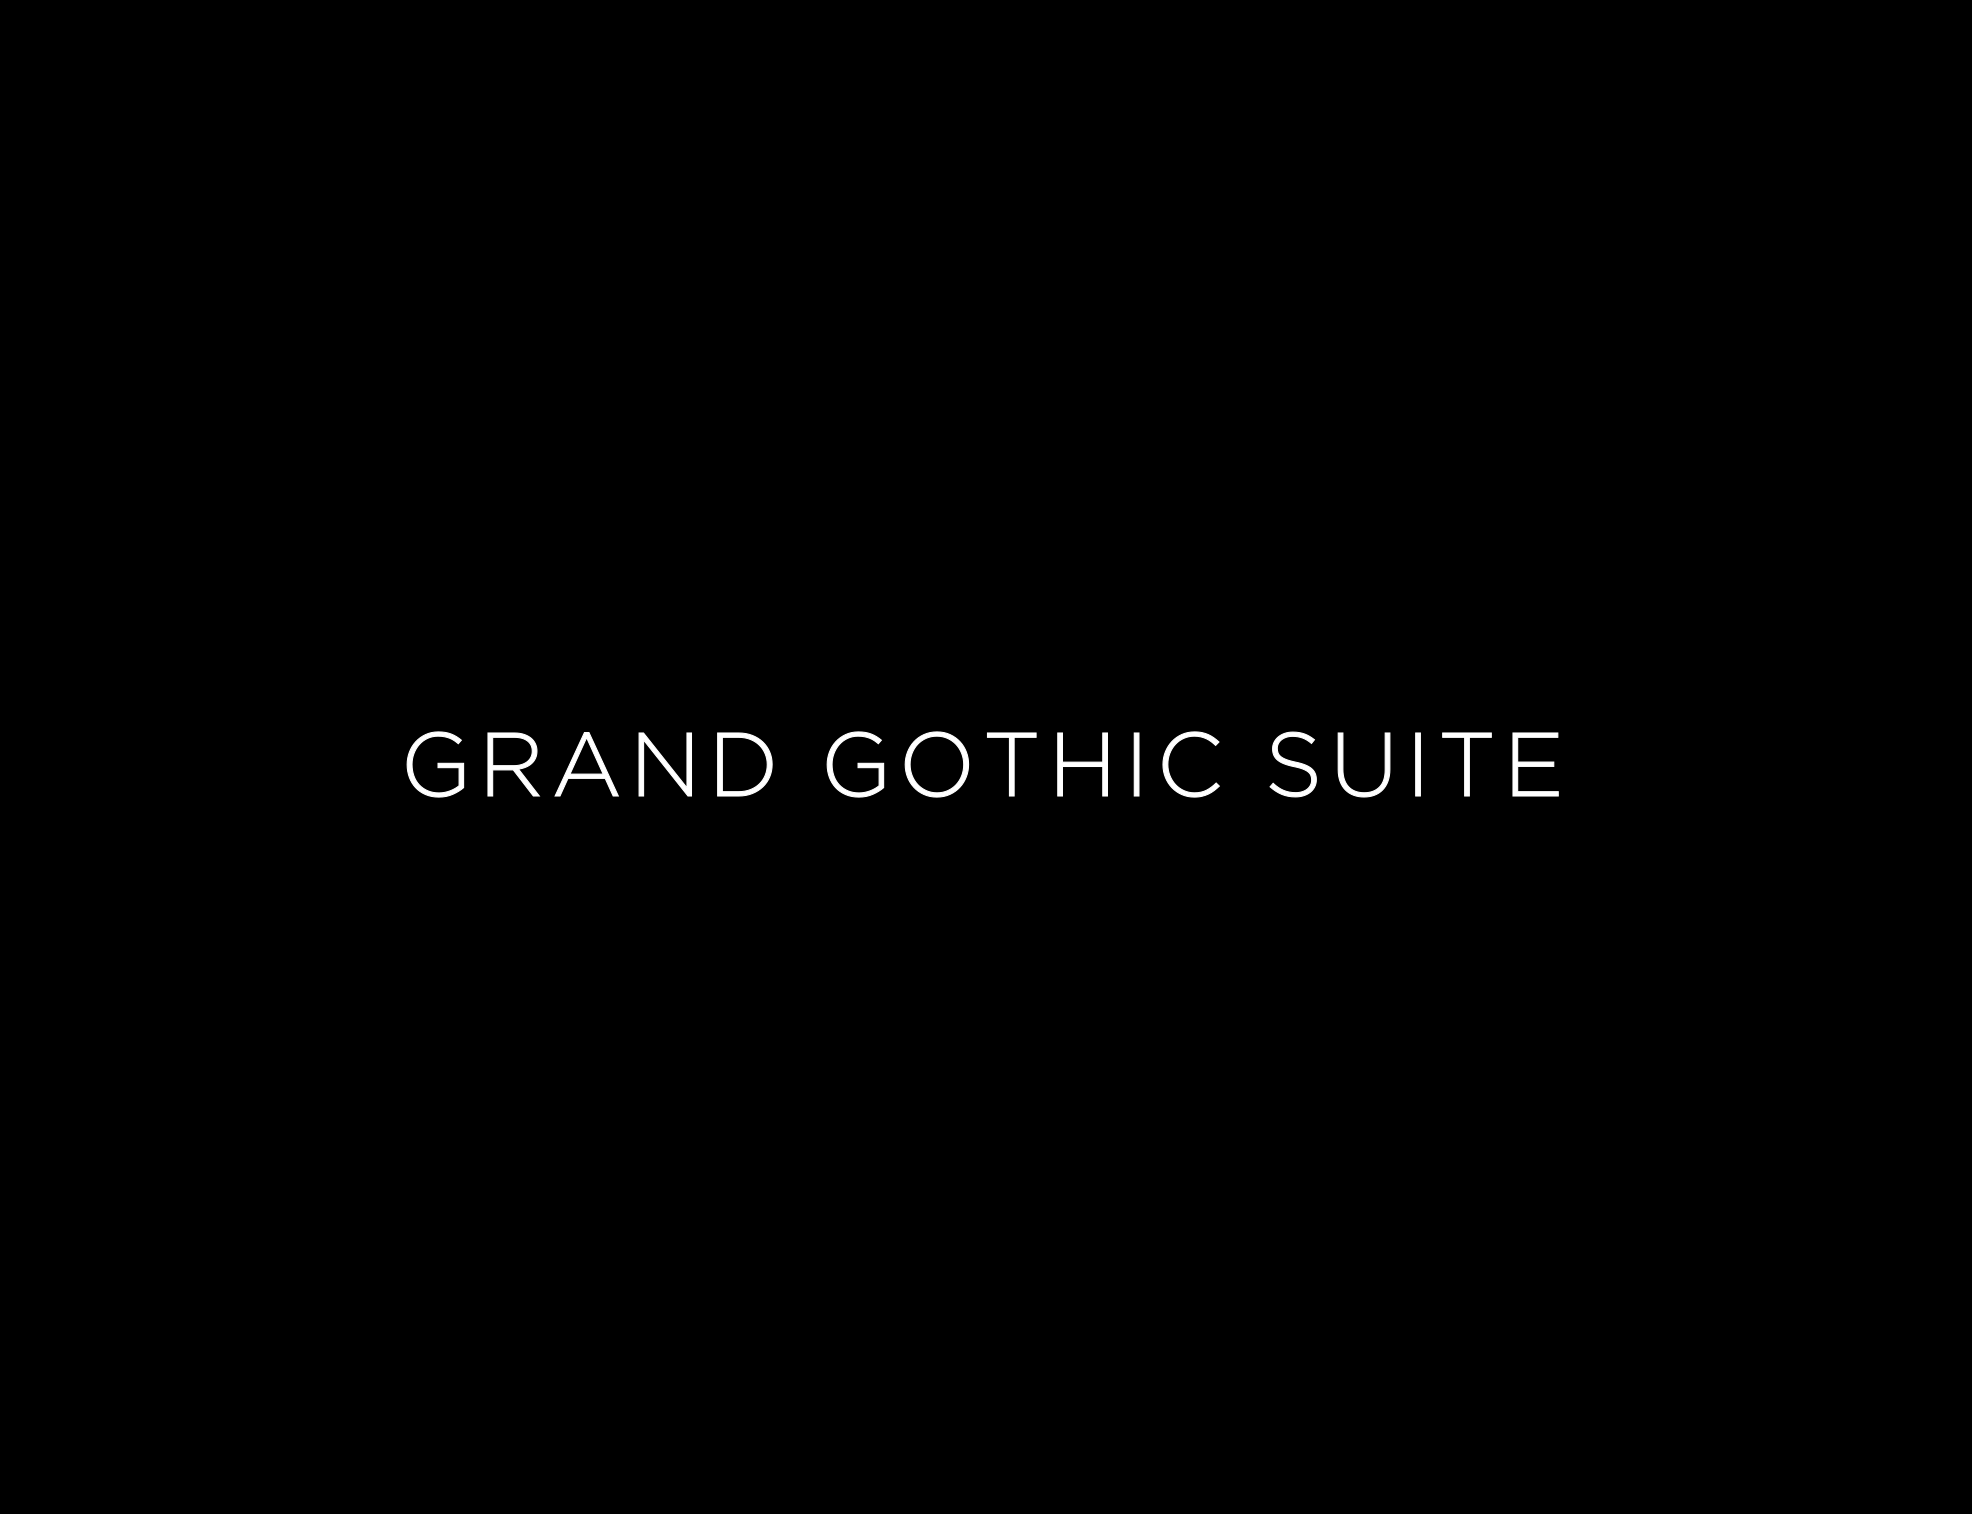 grand gothic suite.png